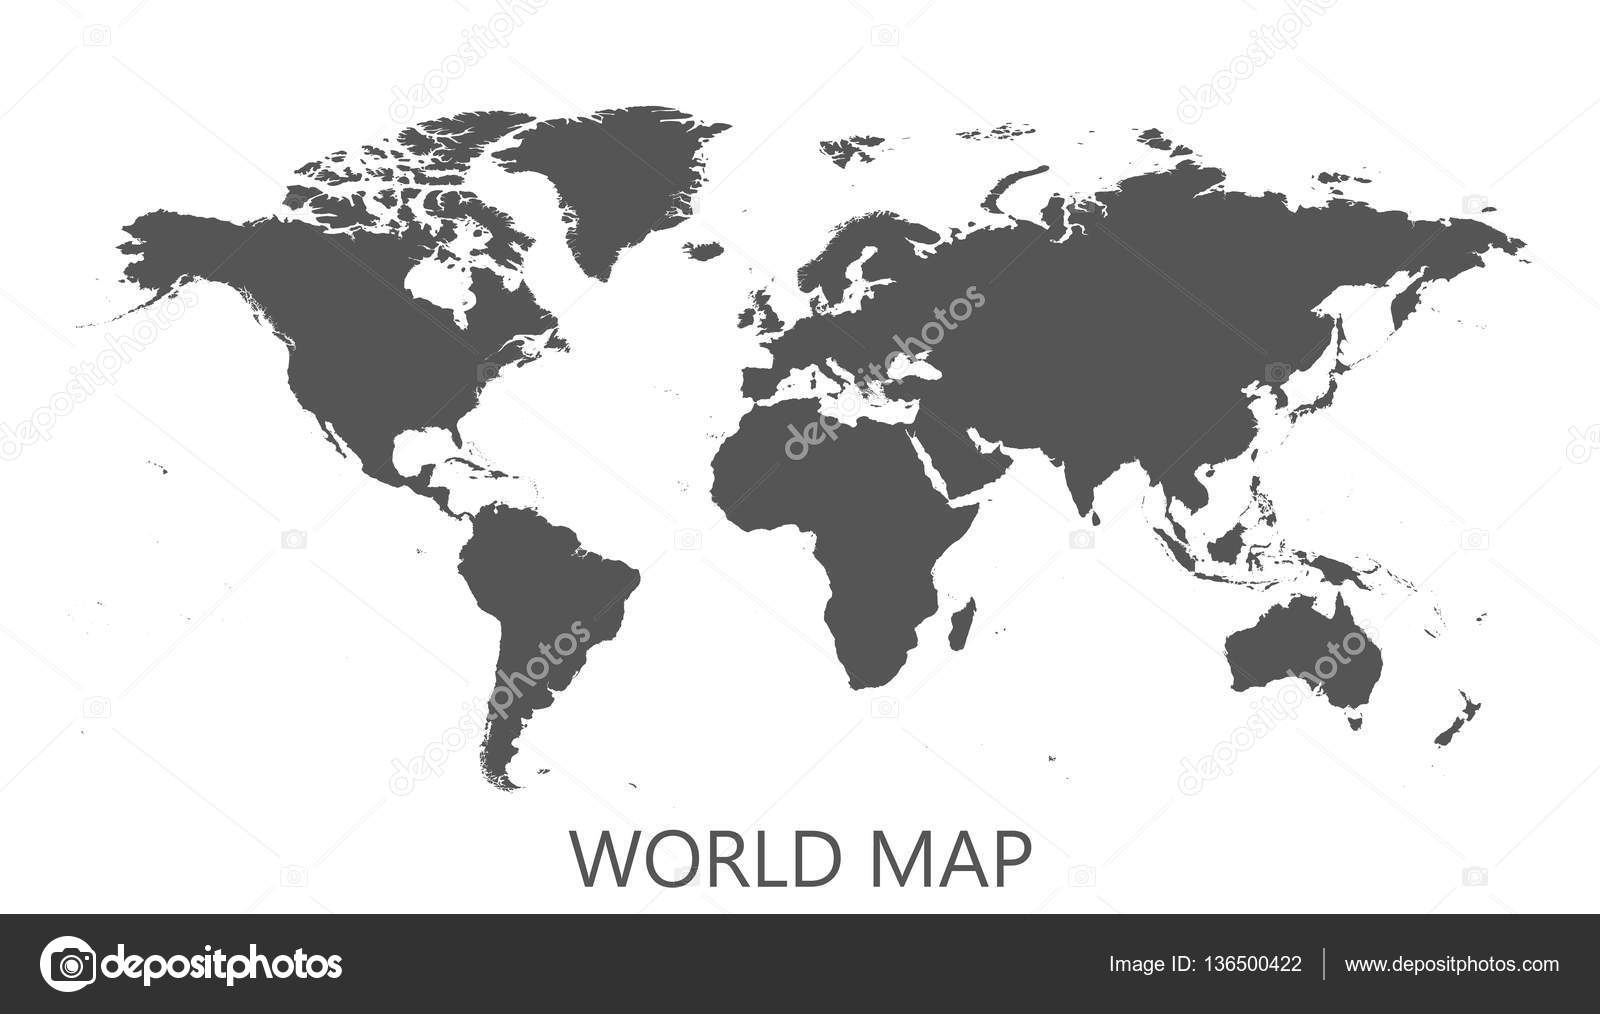 Blank black world map isolated on white background world map vector blank black world map isolated on white background world map vector template for website infographics design flat earth world map illustration gumiabroncs Images